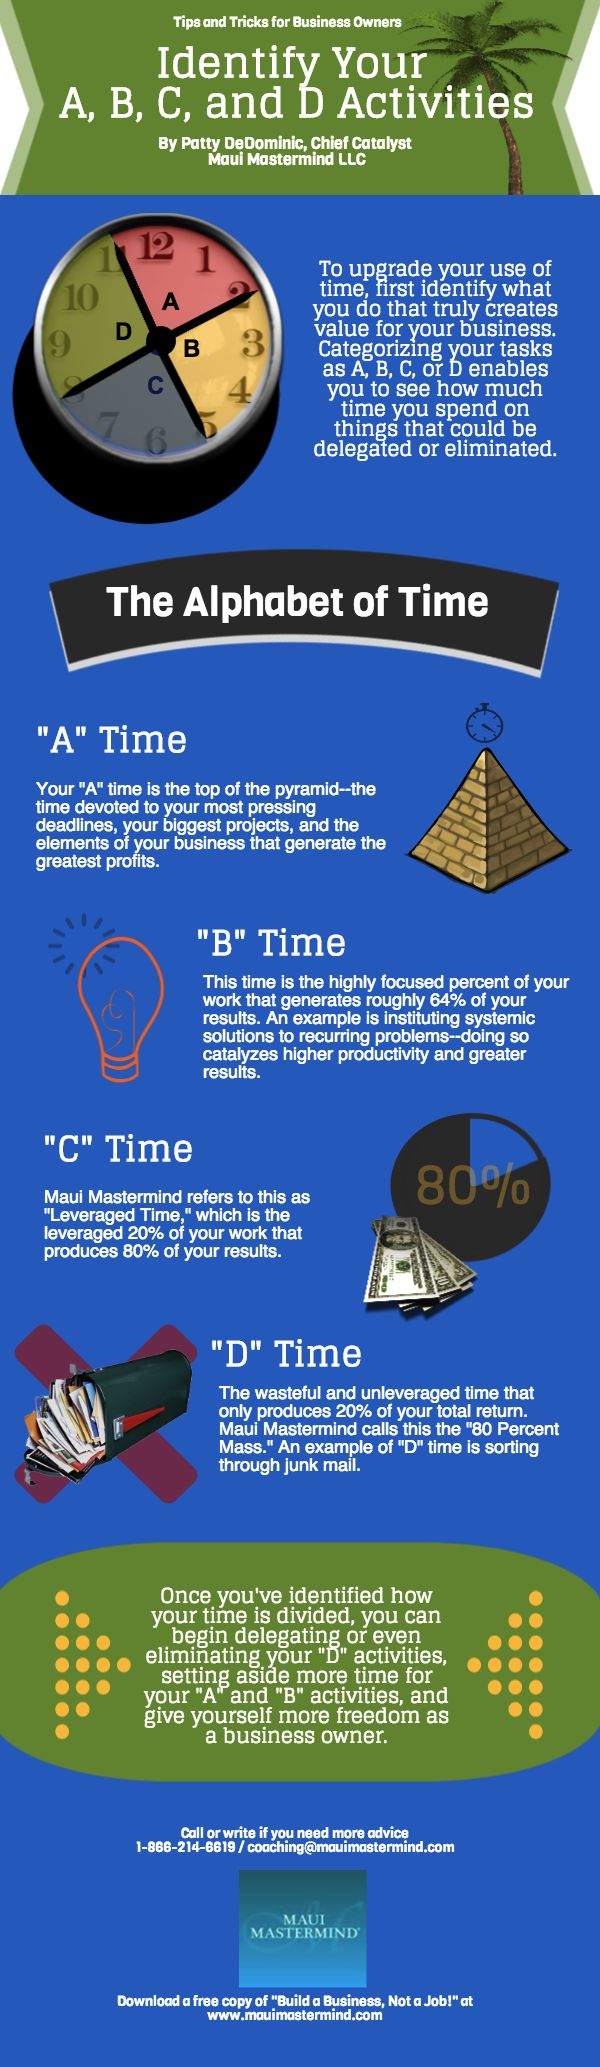 "Download a FREE copy of ""Build a Business, Not a Job!"" at www.mauimastermind.com #mauimastermind #business #infographic #scale #grow #rich #wealth #tips #tricks #format #package #system #alphabet #time #management #activity: Businesstips Tipsandtricks, Tricks Format, Biztips Businesstips, Productivity Biztips, Tips Tricks, Organized Life Happy, Infographic, Tips And Tricks, Life Happy Wife"